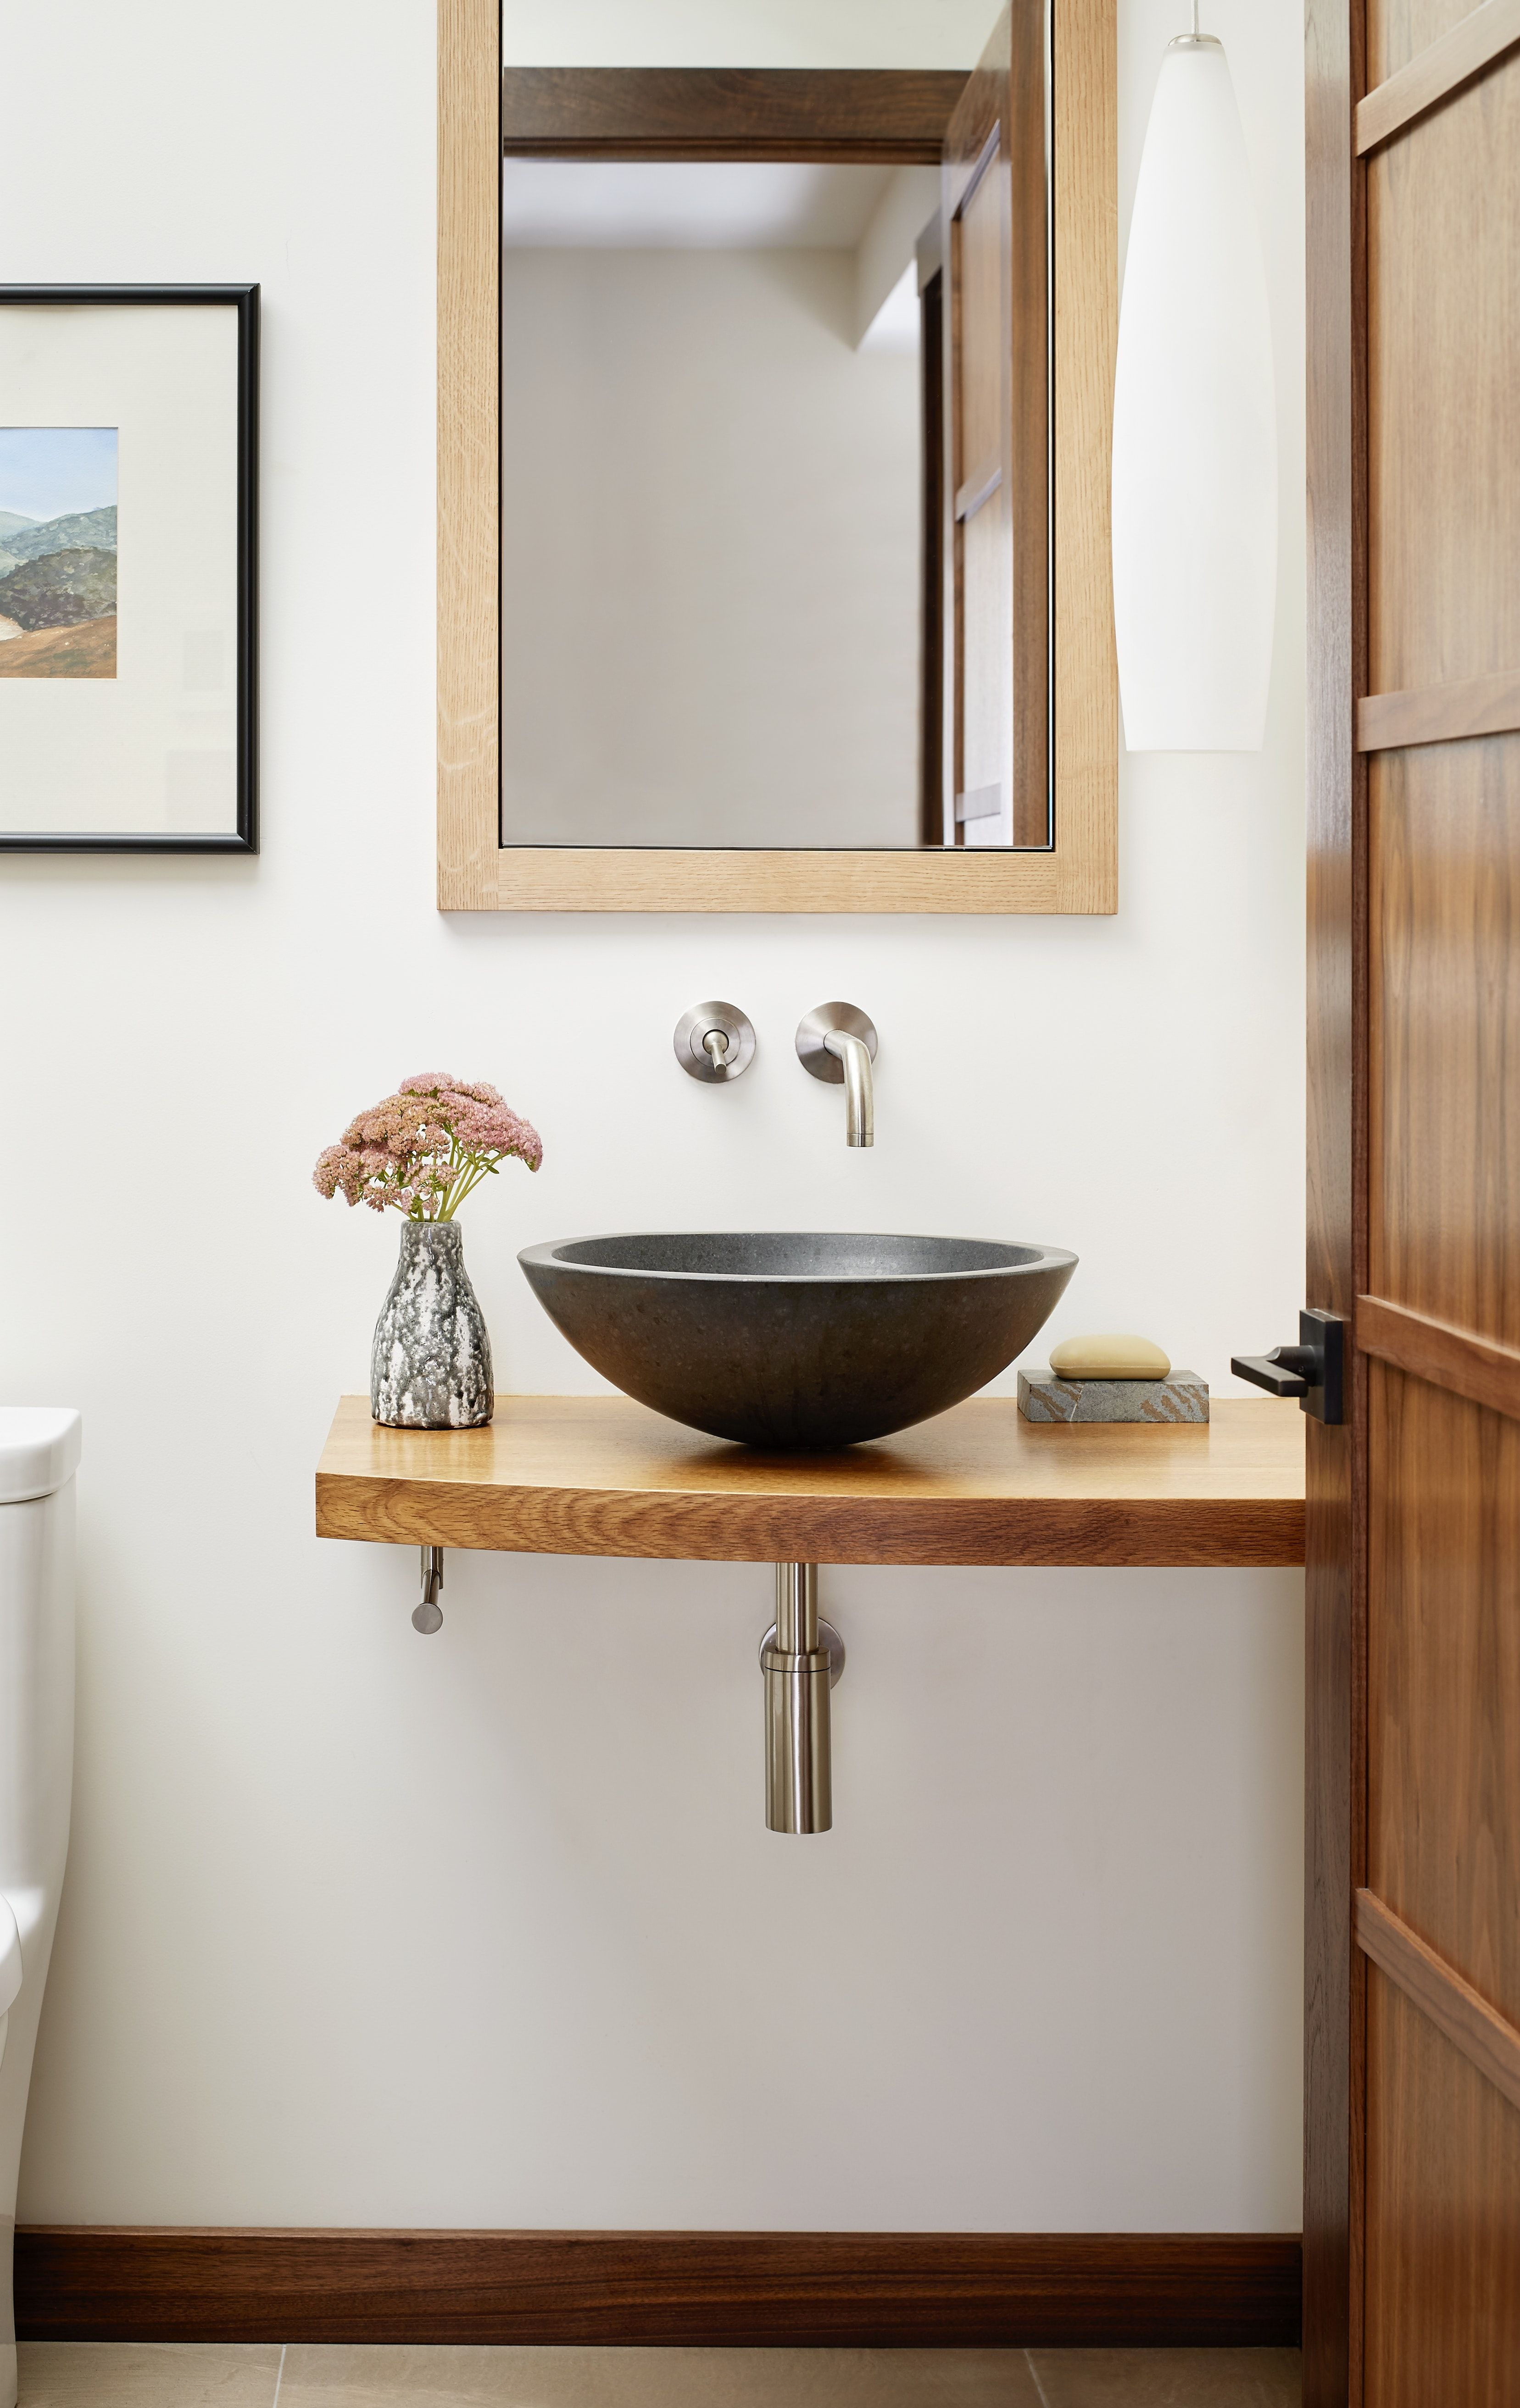 Soulful Home Powder Room With Vessel Sink And Exposed Plumbing Exposed Plumbing Powder Room Vanity Exposed Plumbing Bathroom Bathroom vanity exposed plumbing